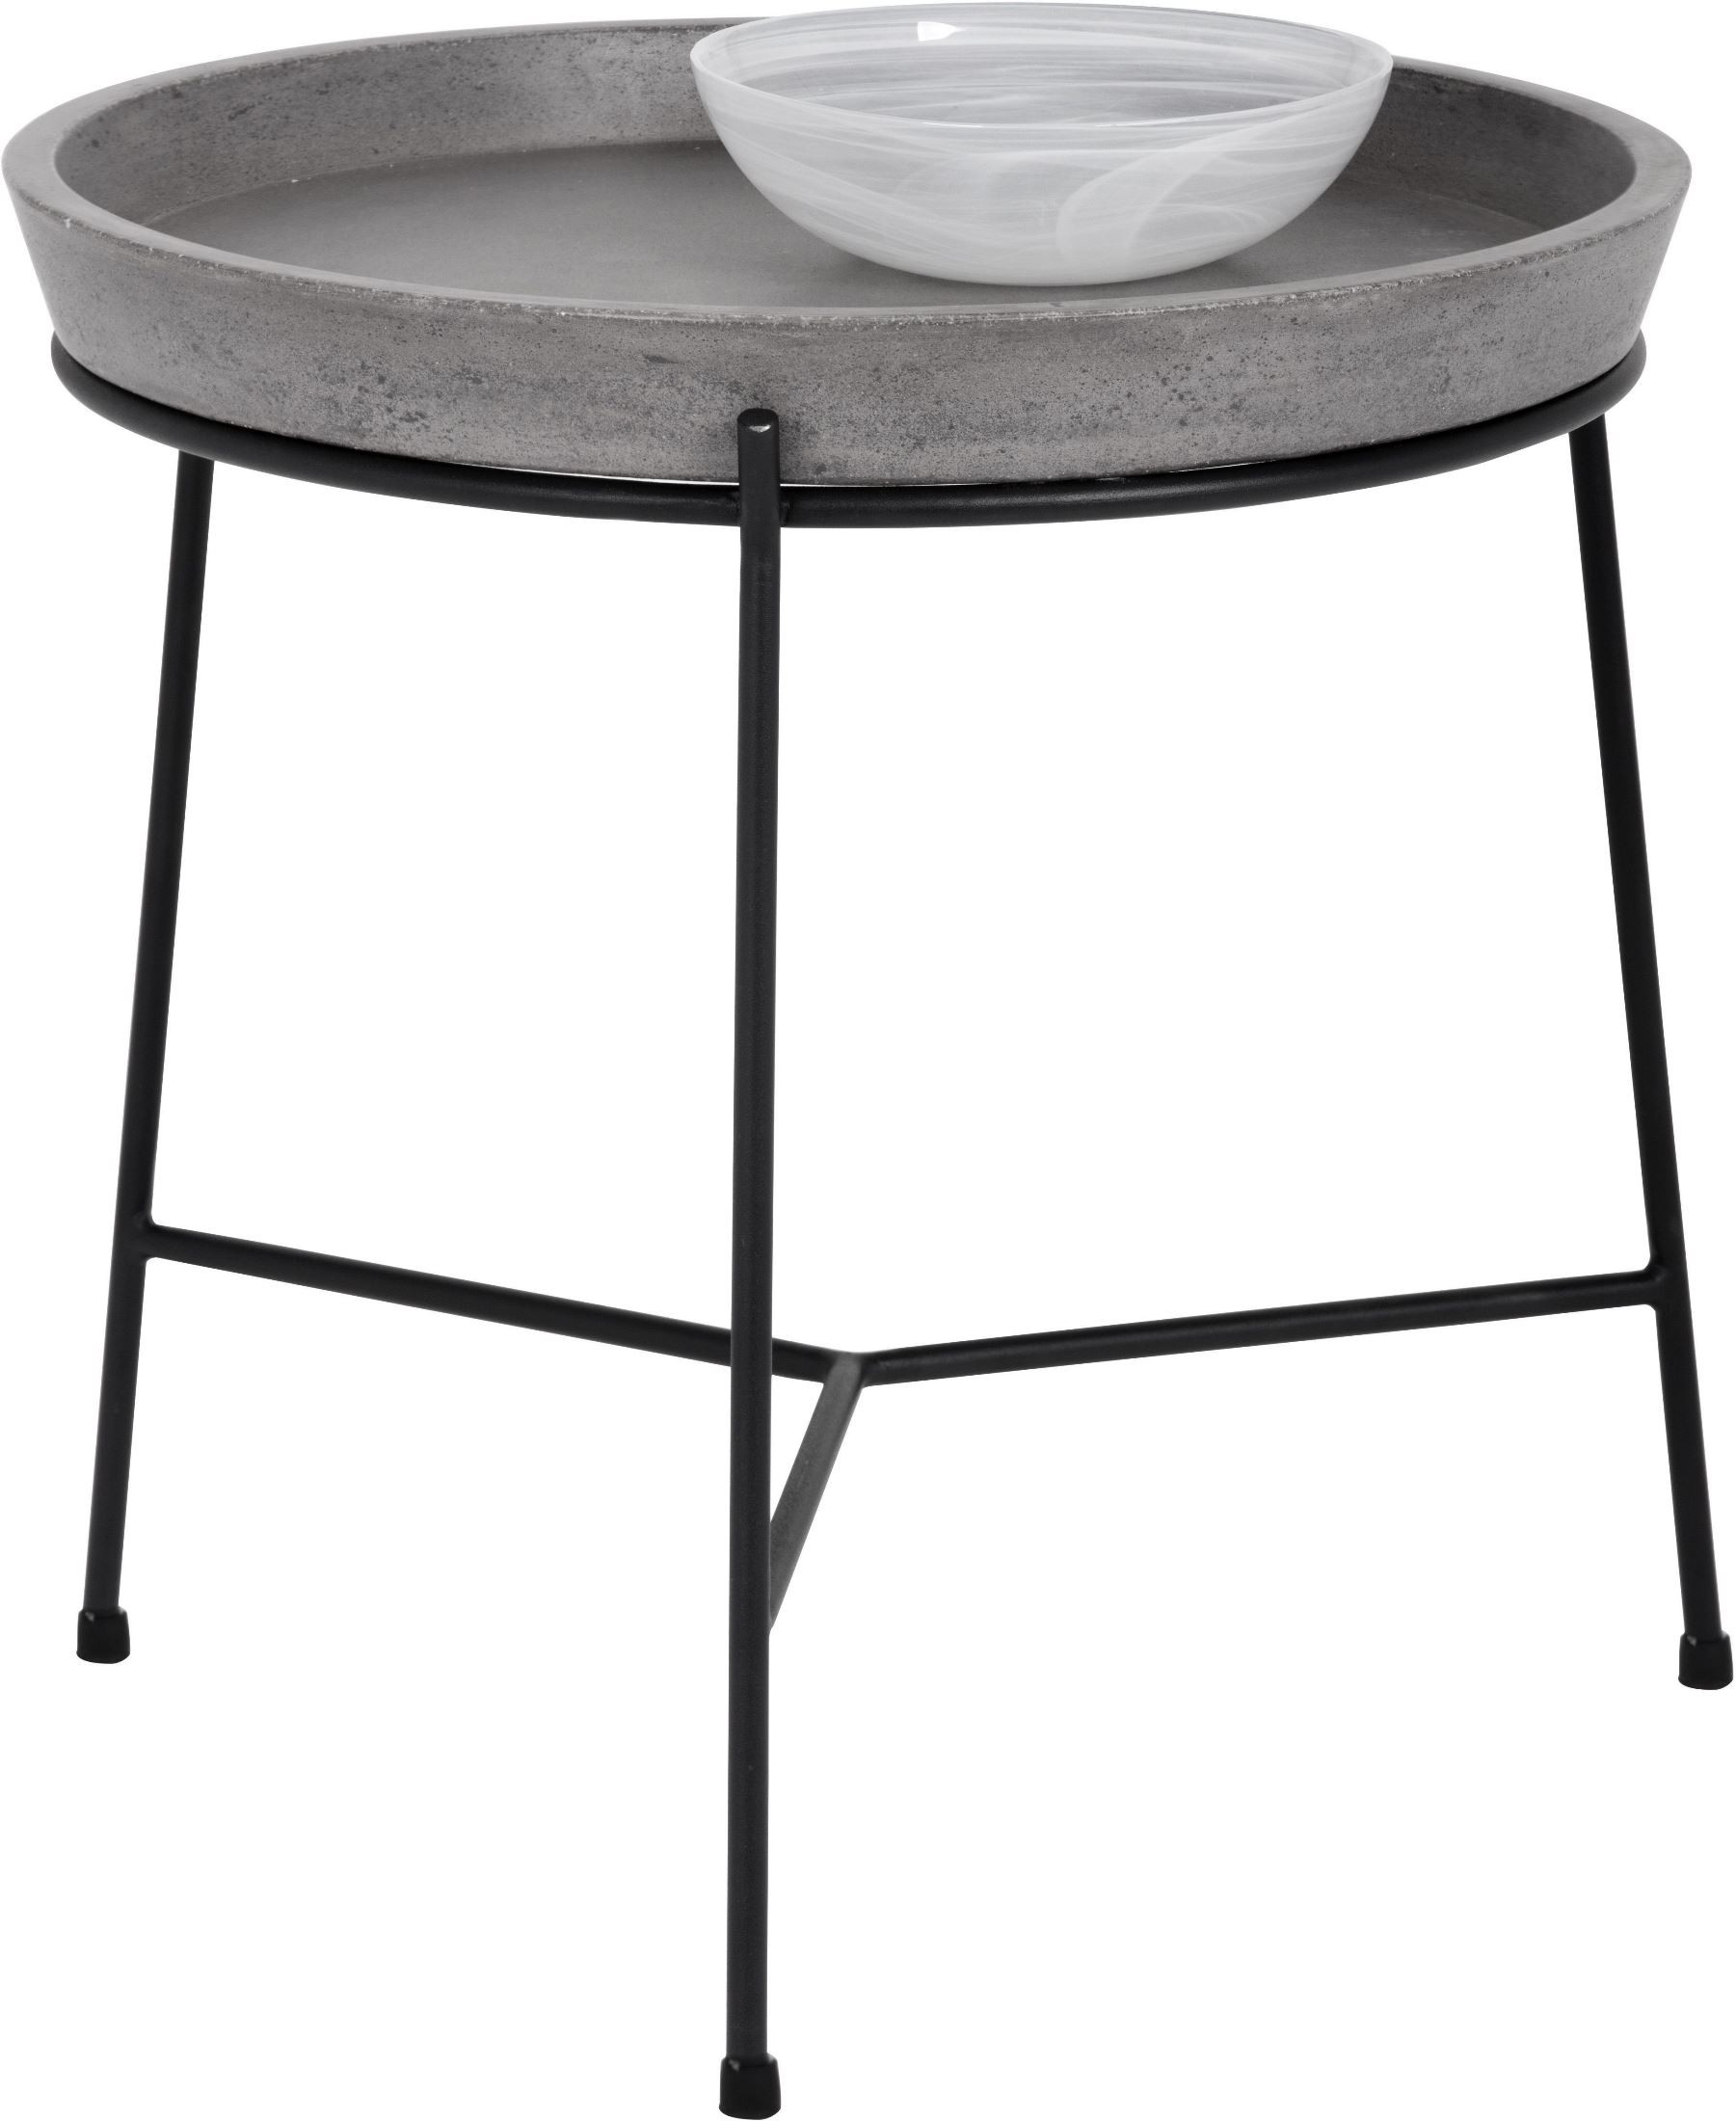 Remy Grey Concrete End Table